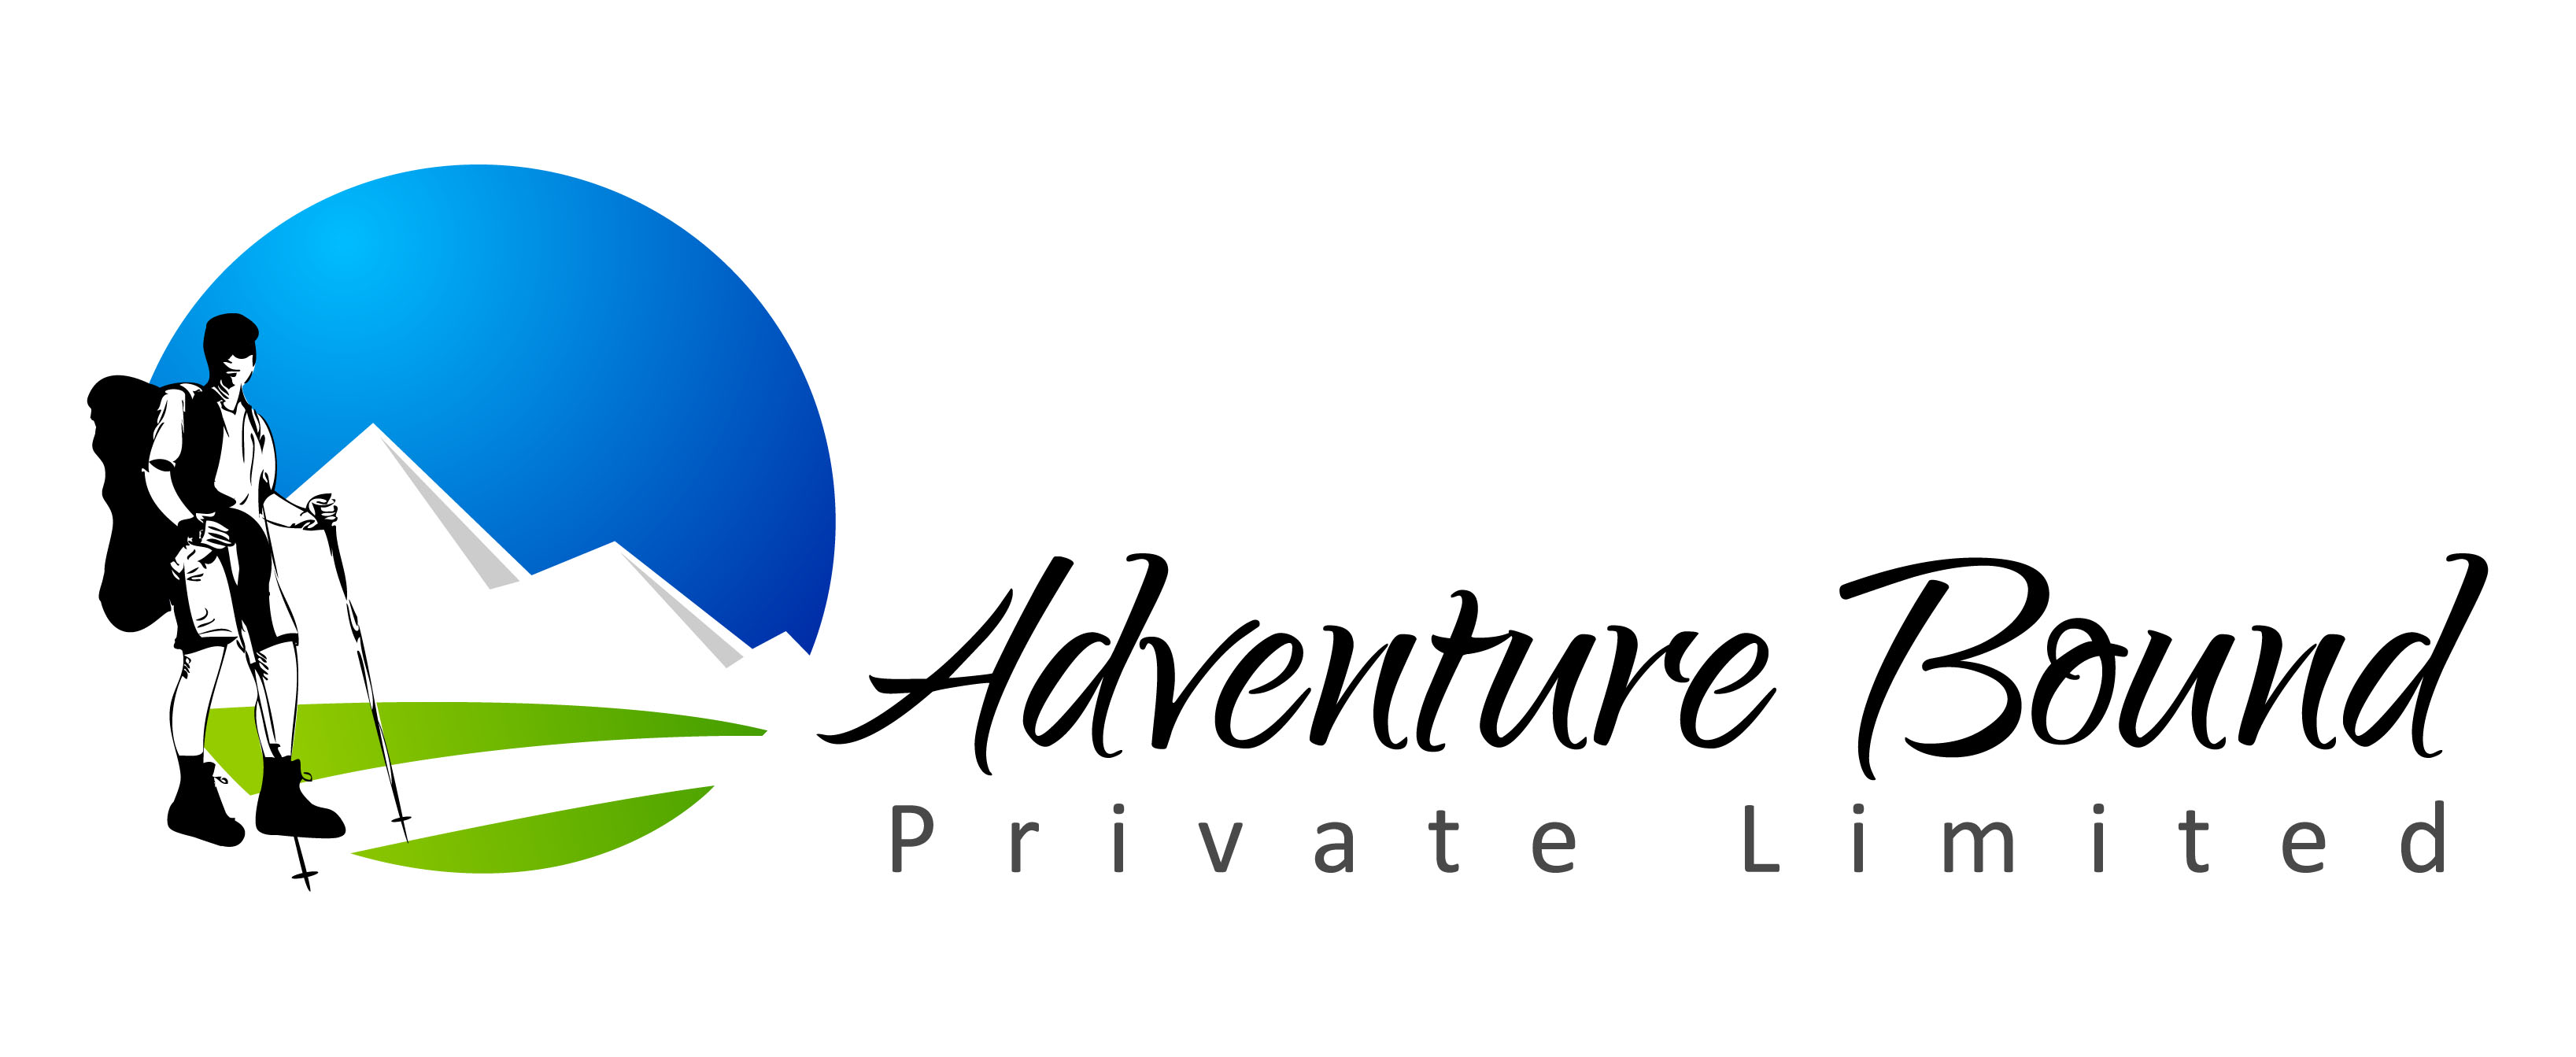 Adventure Bound (P.) Ltd.